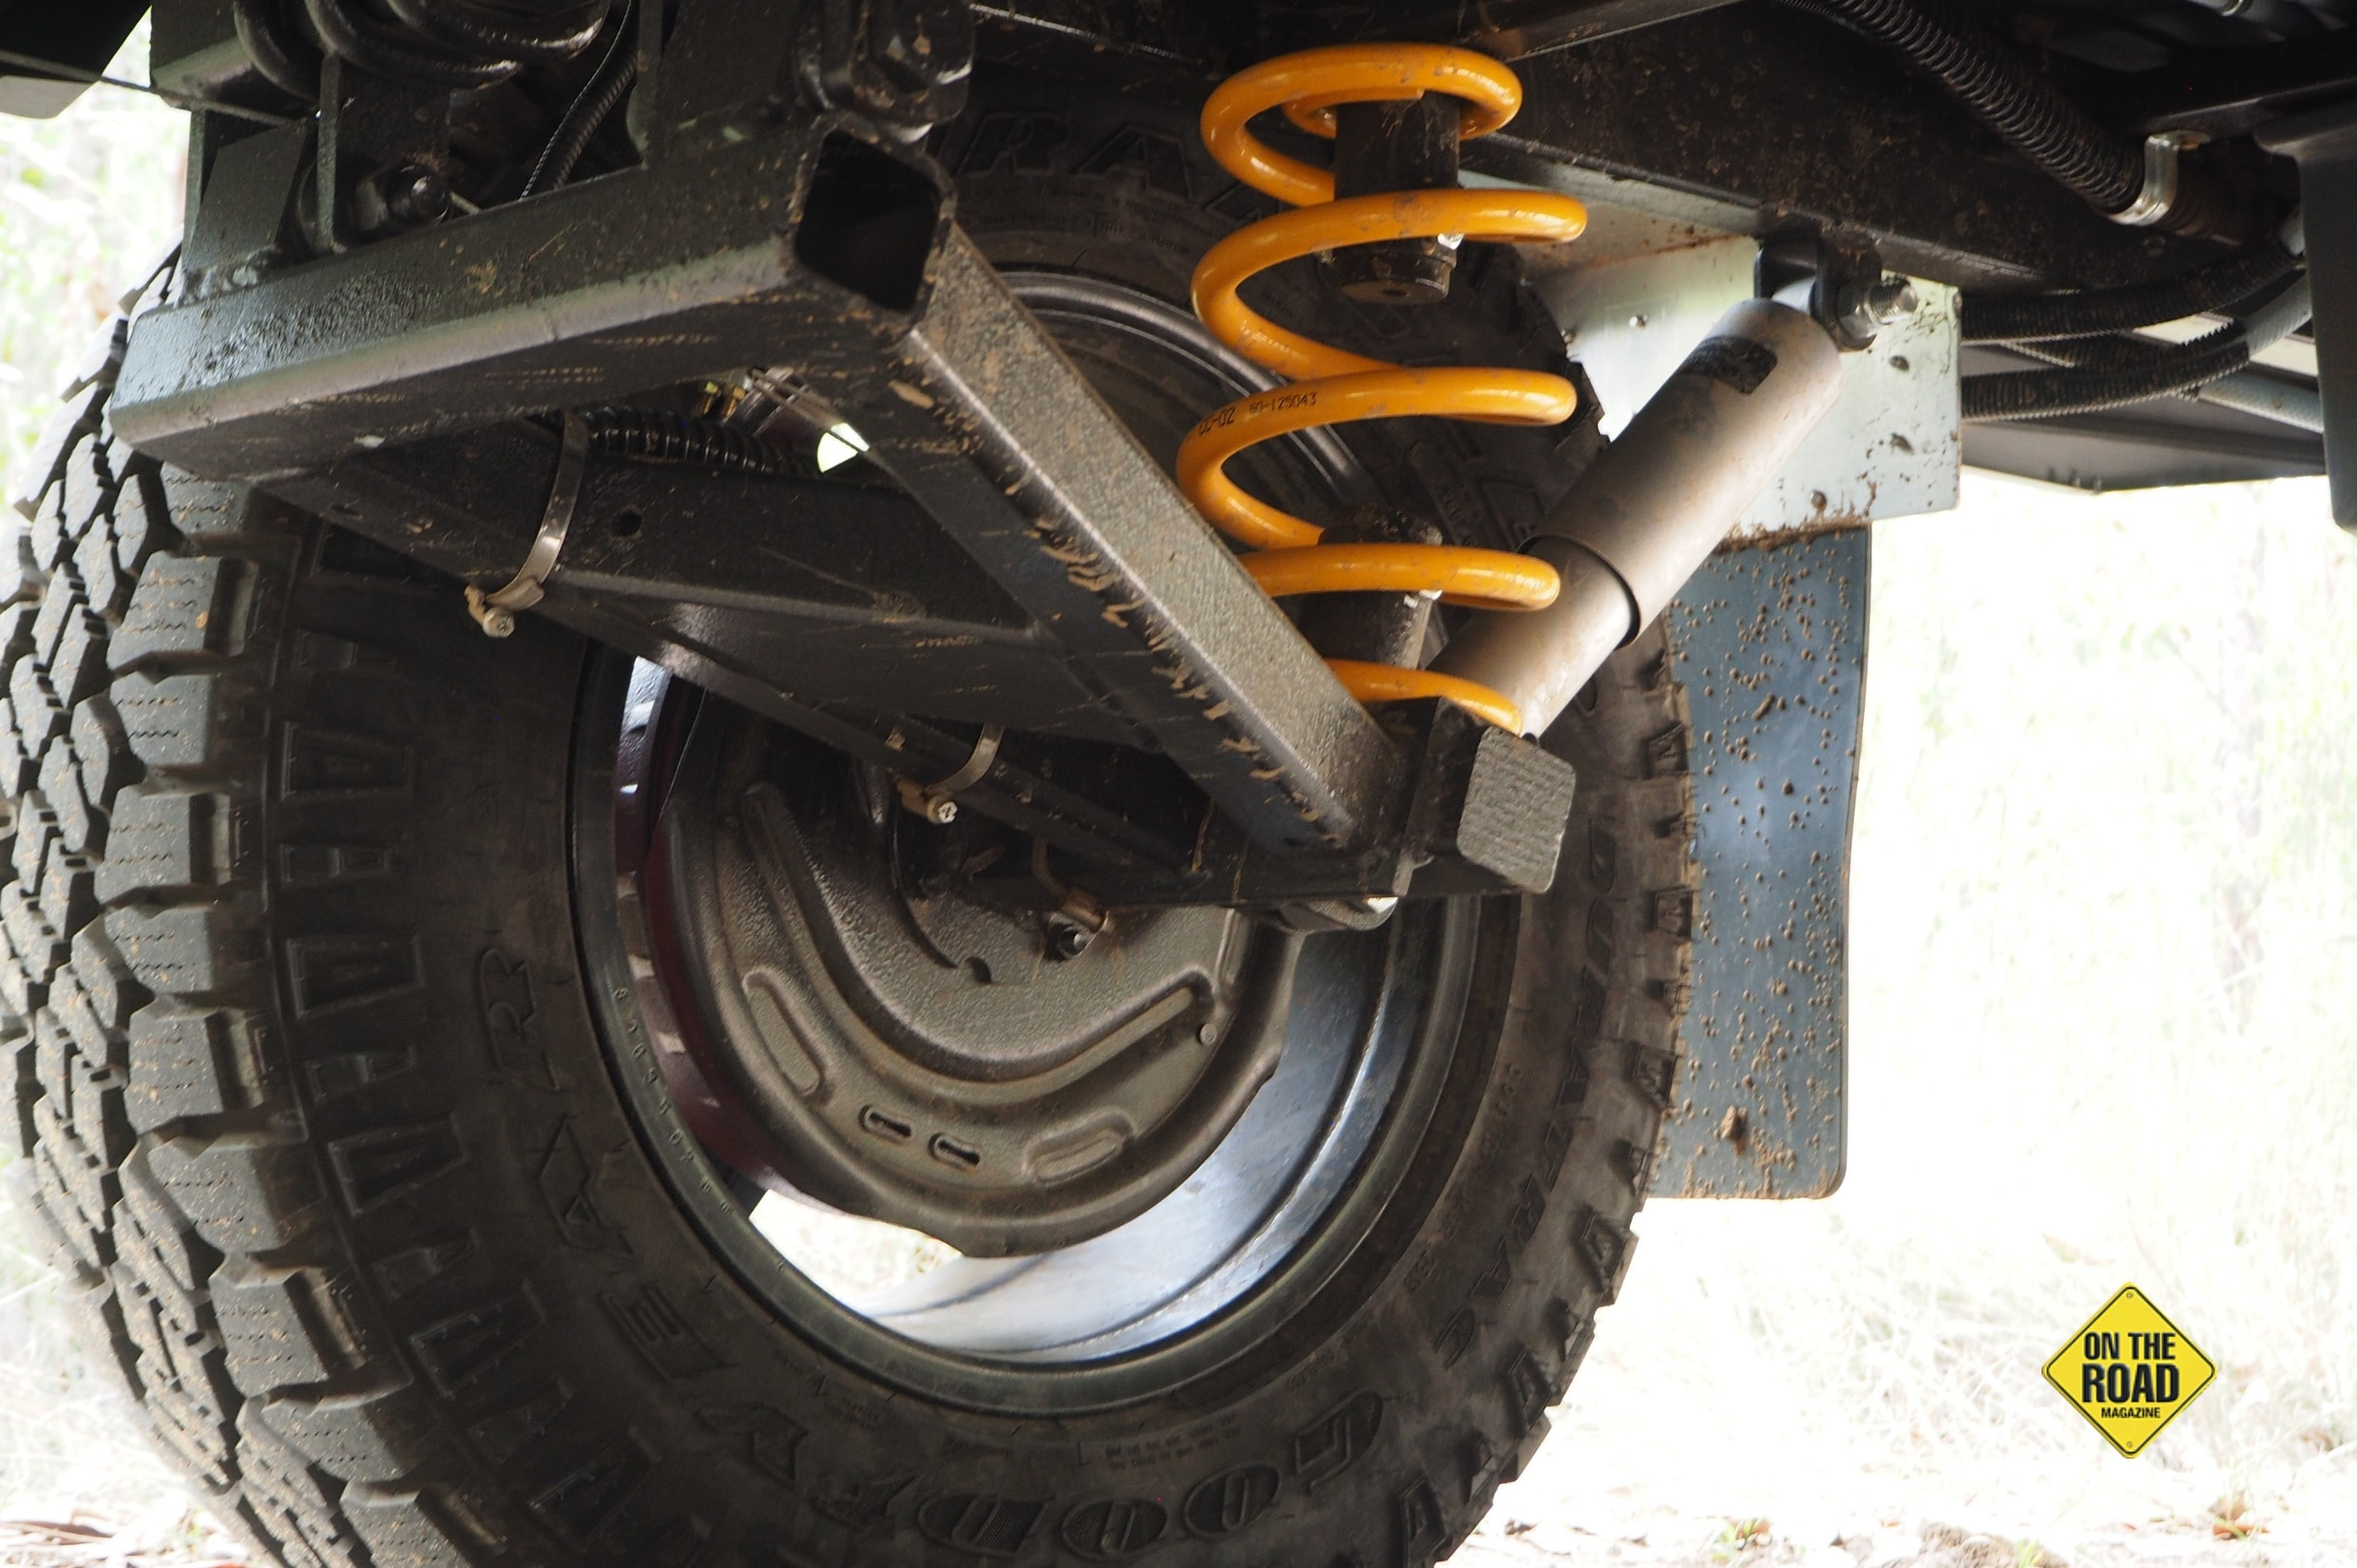 The Frontier has independent offroad suspension.